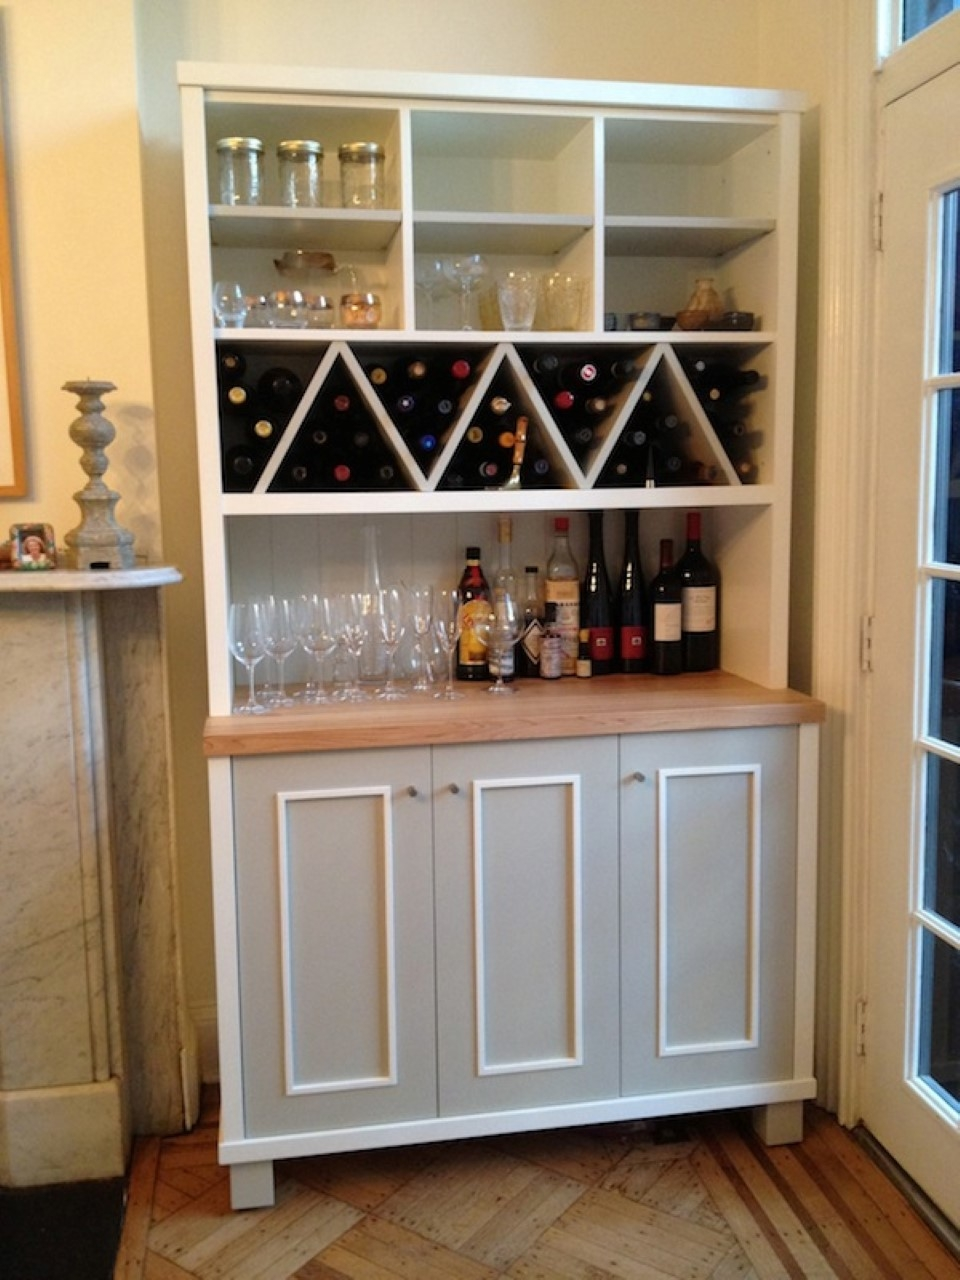 Zigzag Shaped Wine Racks With Multi Purposes Kitchen Wall Storage With Regard To Storage Racks For Kitchen Cupboards (View 6 of 25)